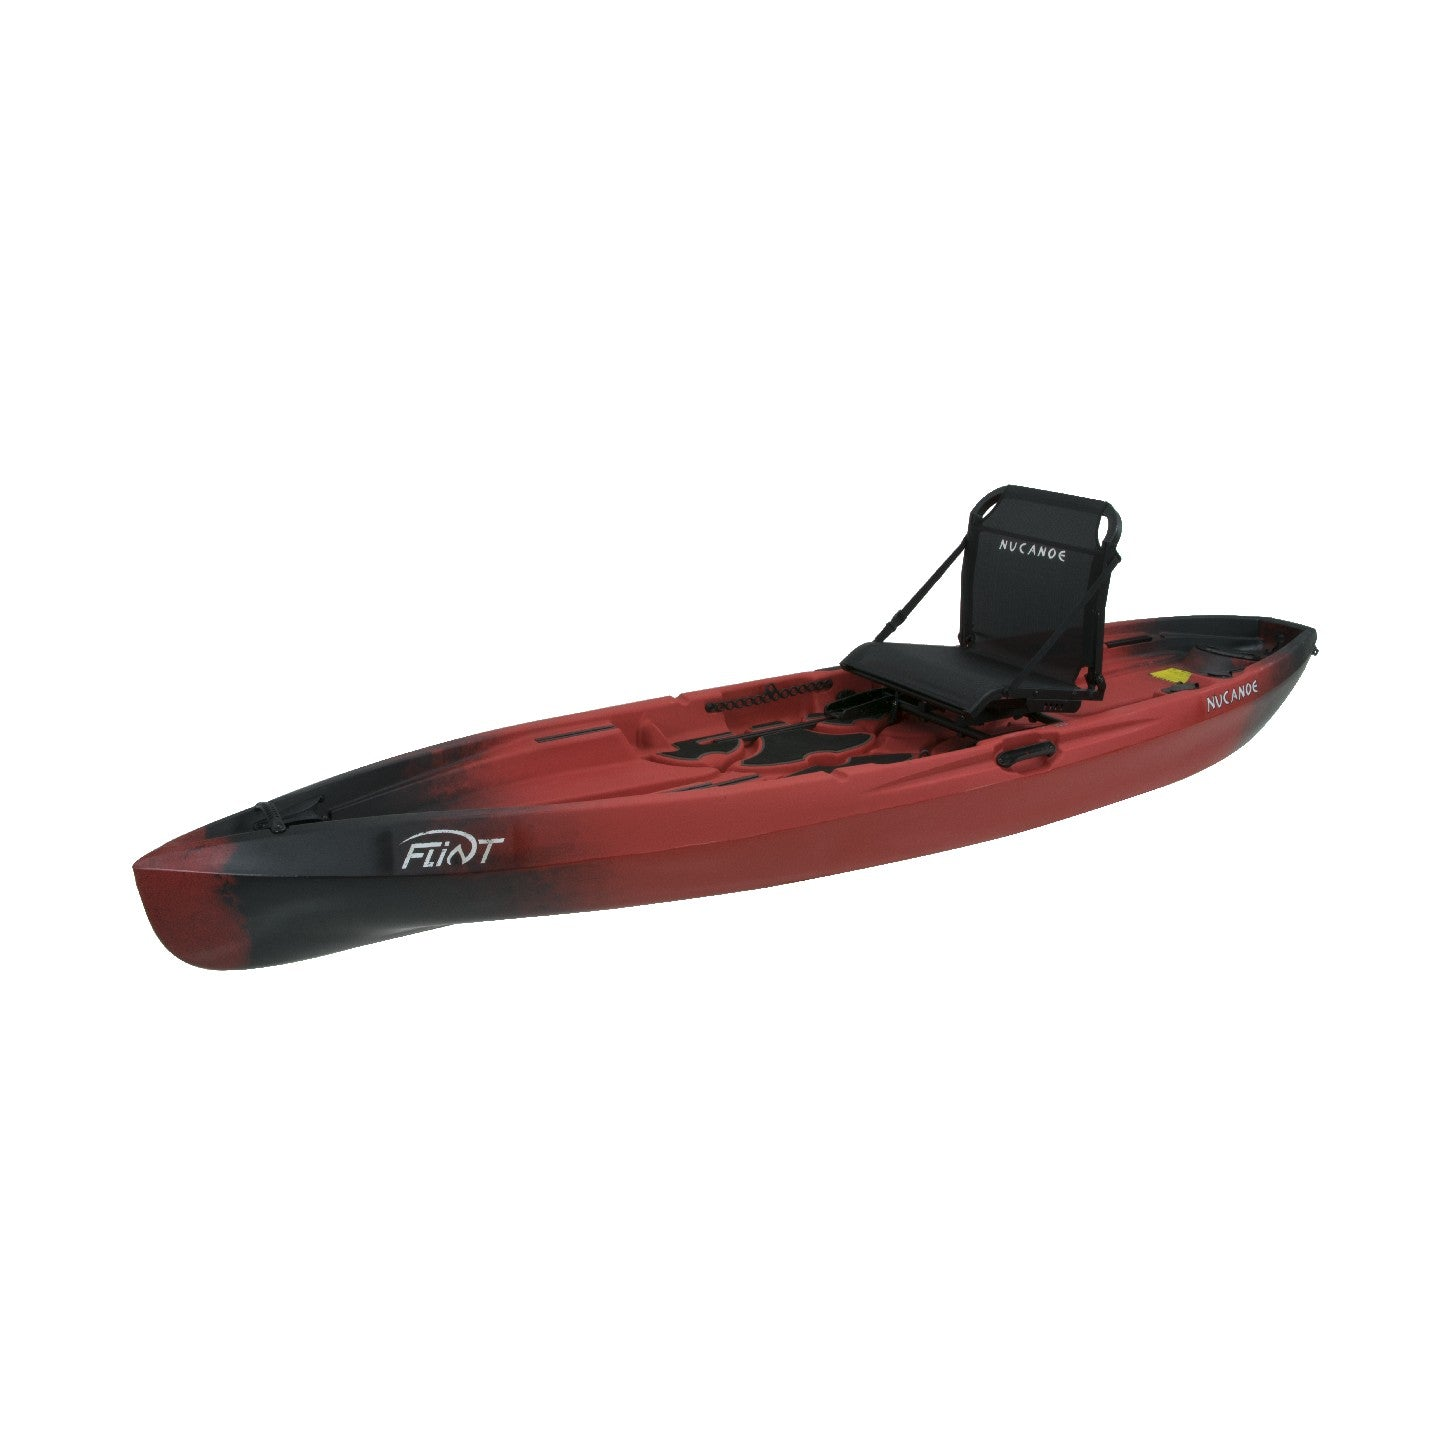 NuCanoe Flint Fishing Kayak 2021 | Bulldog - Kayak Creek